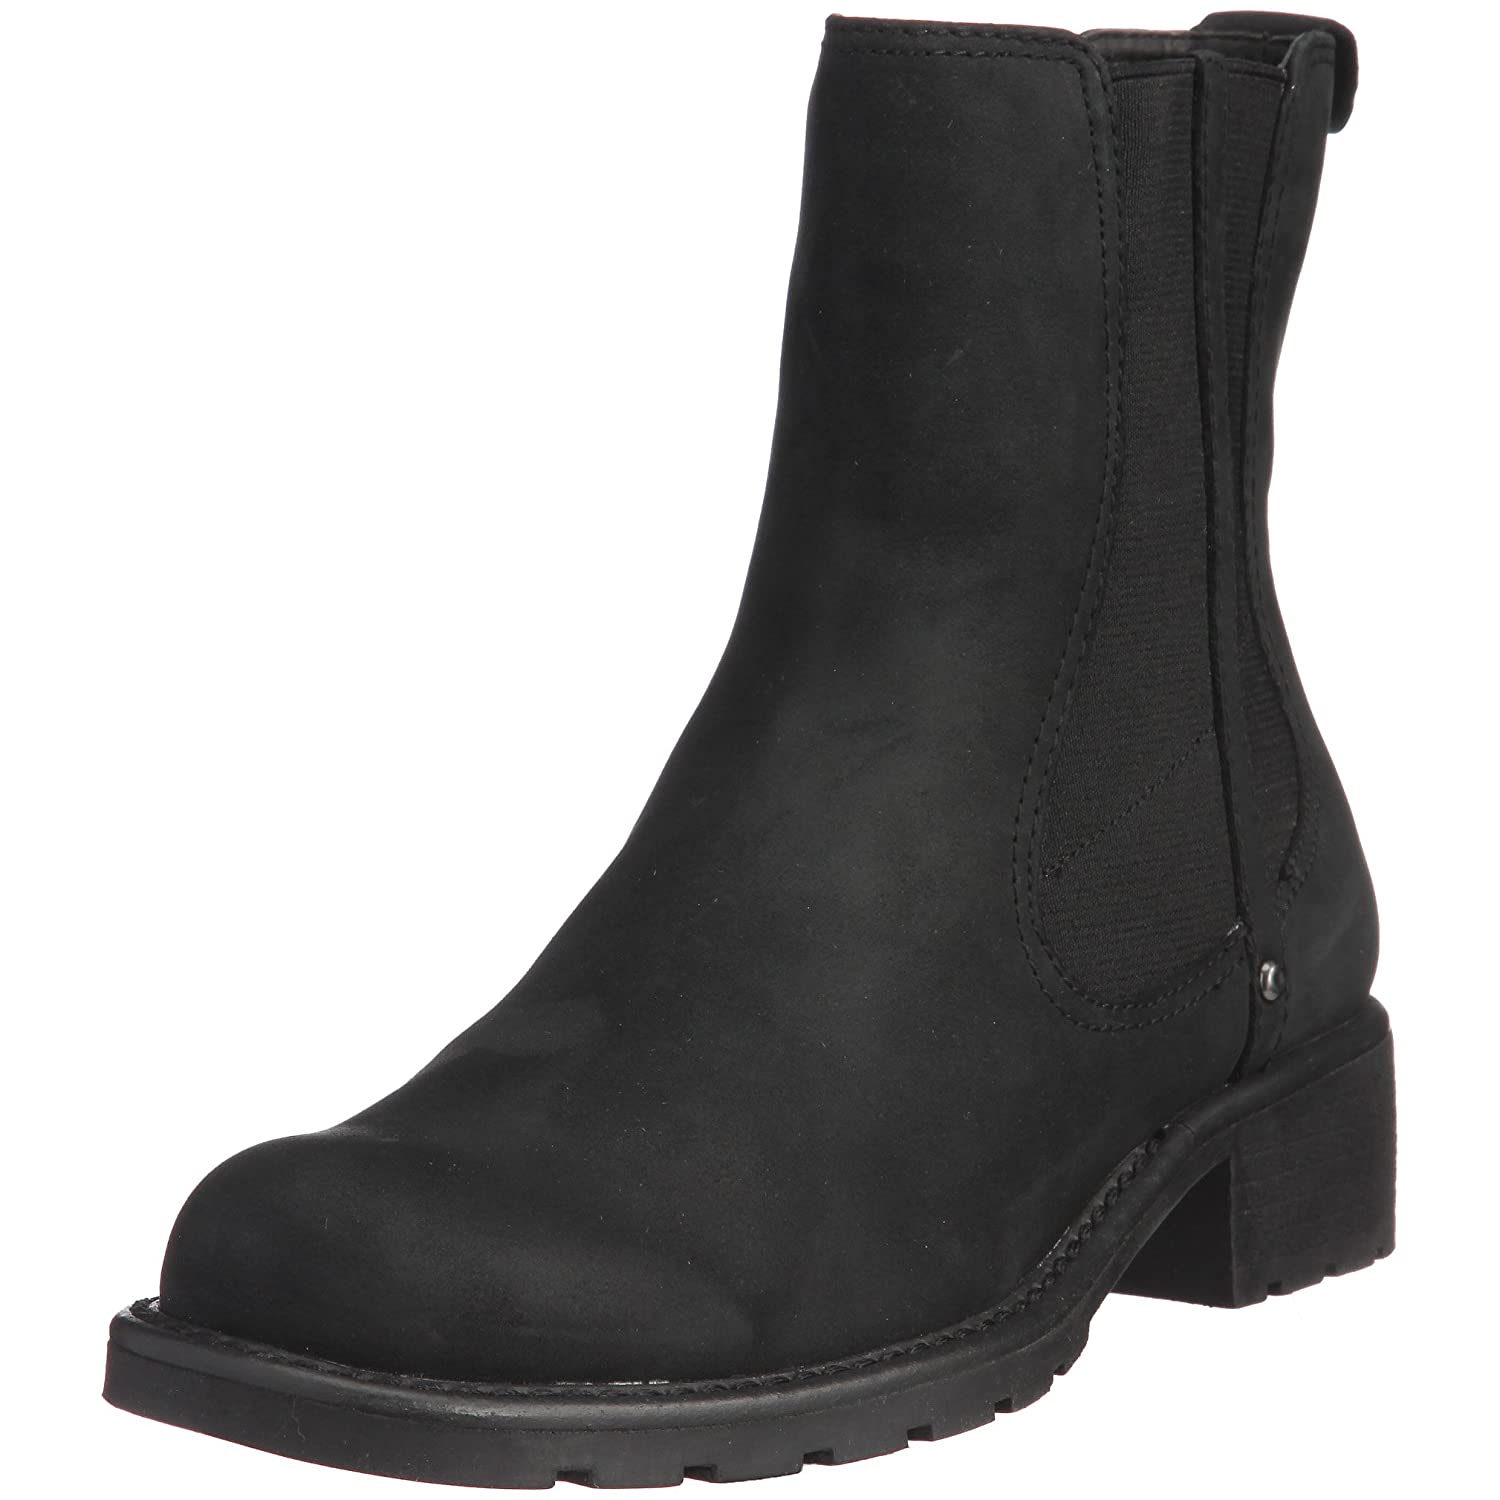 Clarks Femme Orinoco Club, Bottes Chelsea Femme Orinoco Noir (Black Bottes Leather) ee8f3a0 - conorscully.space